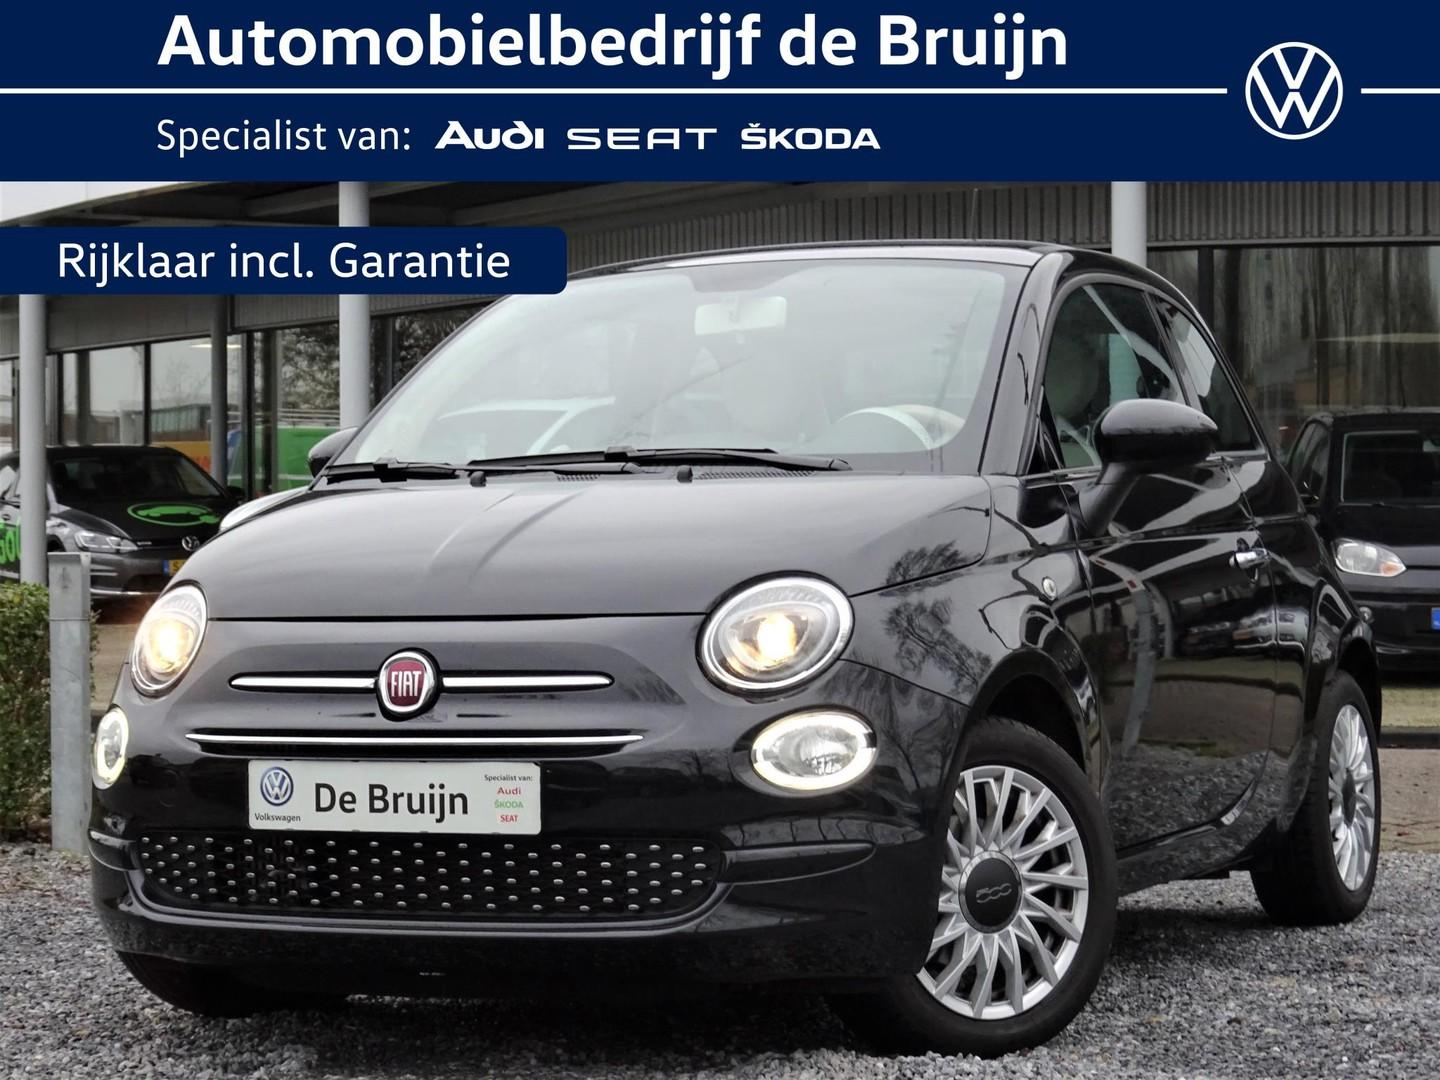 Fiat 500 Turbo lounge 80pk (glasdak,cruise,lm)